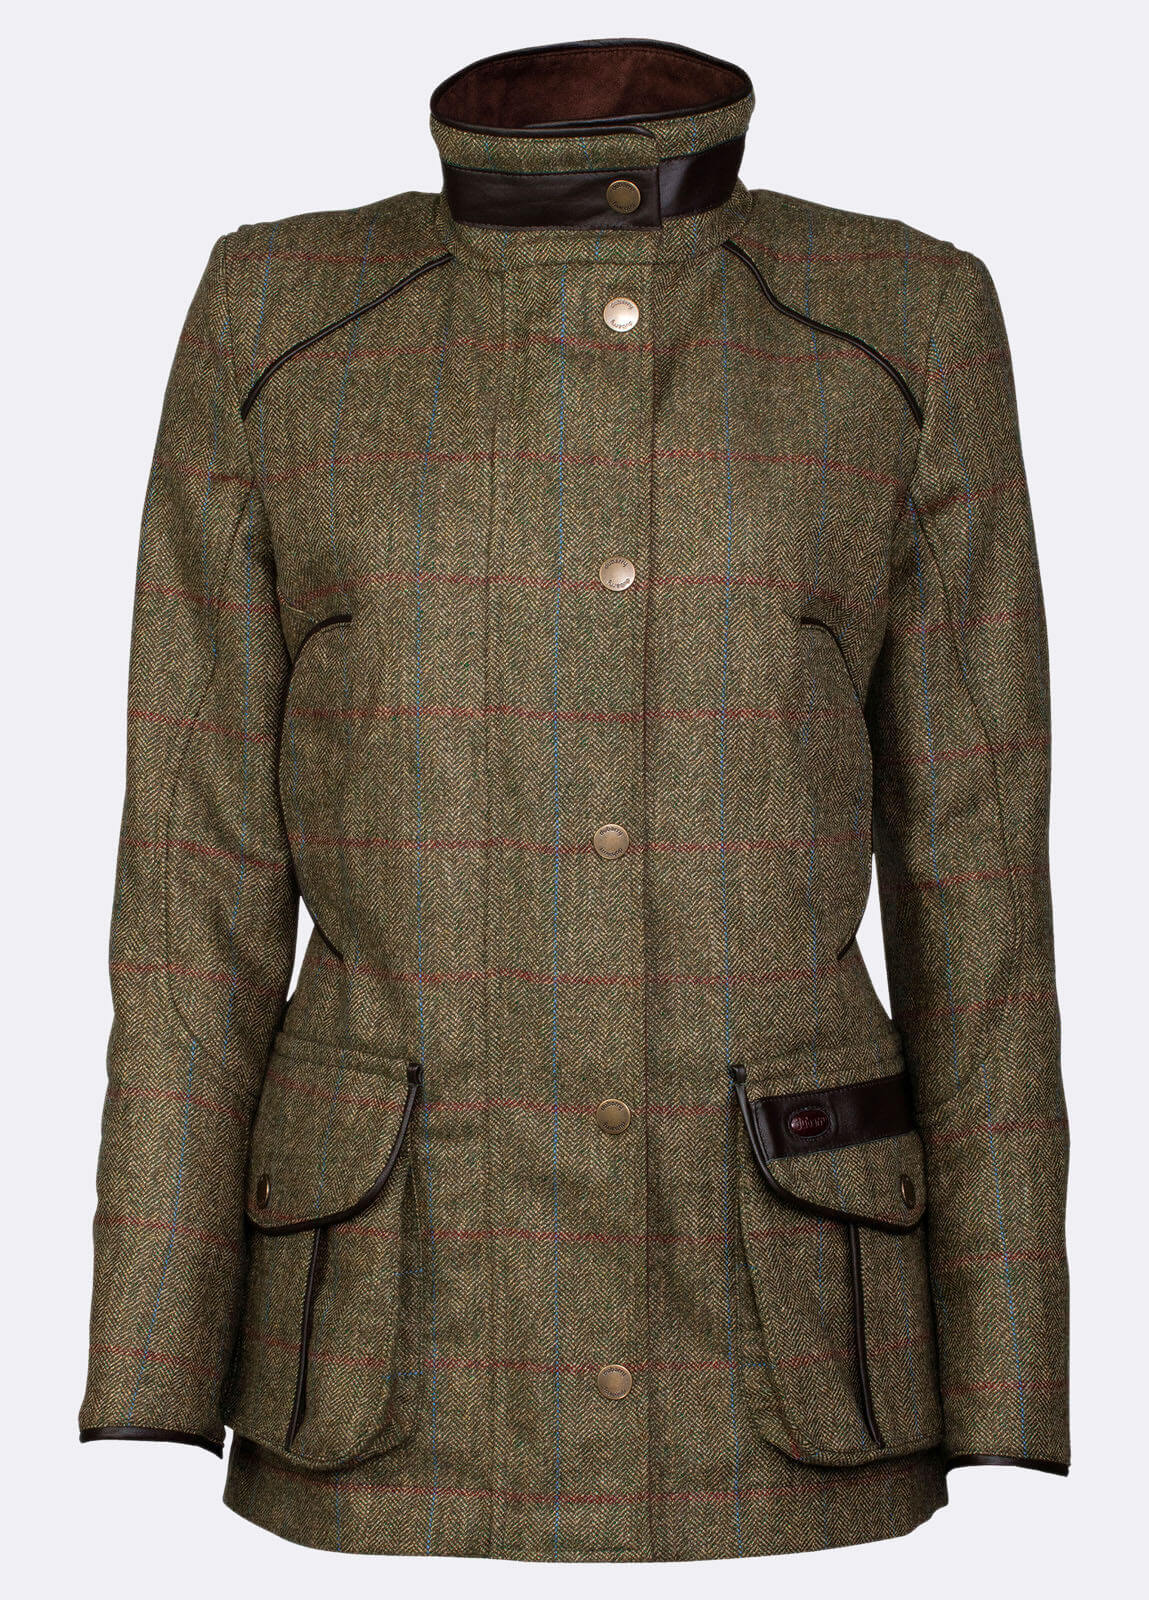 Marlfield Tweed Jacket - Moss